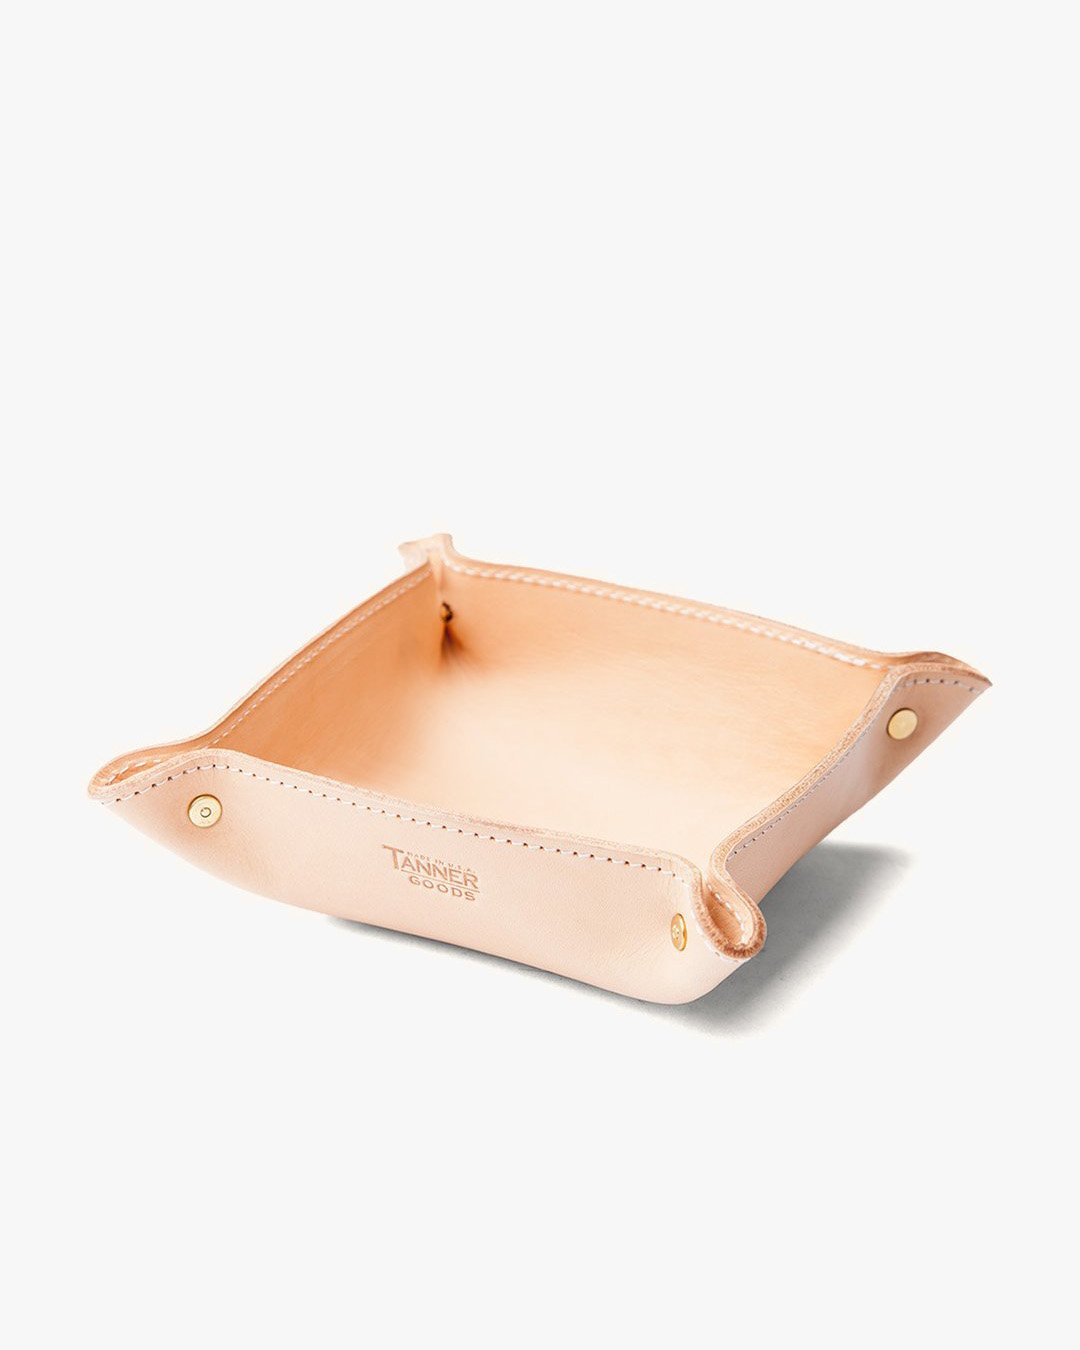 Tanner Goods Valet Tray - Natural 30500LEATHER Tanner Goods Miscellaneous